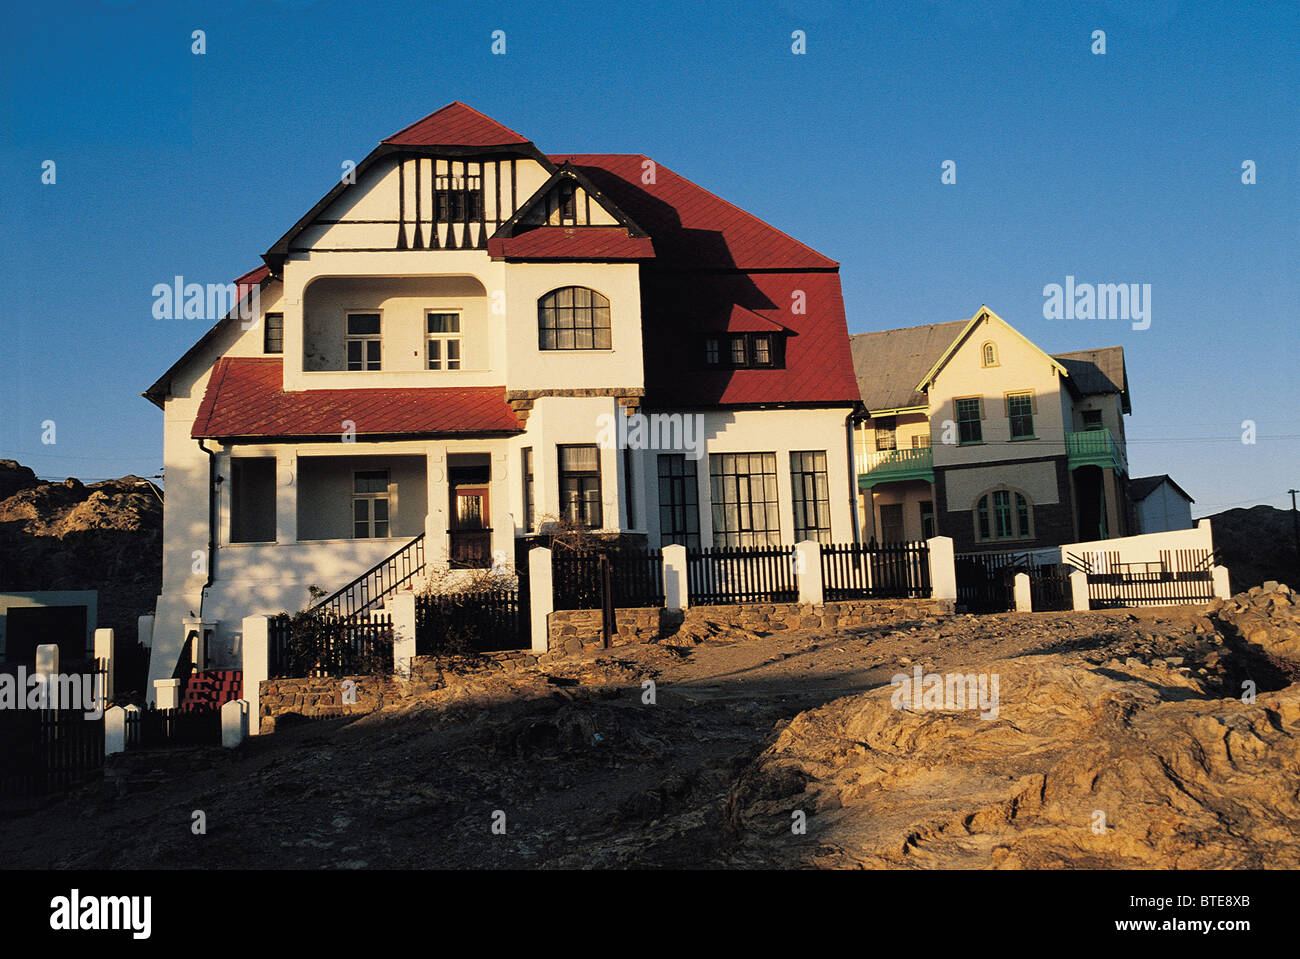 A double storey house in Luderitz - Stock Image